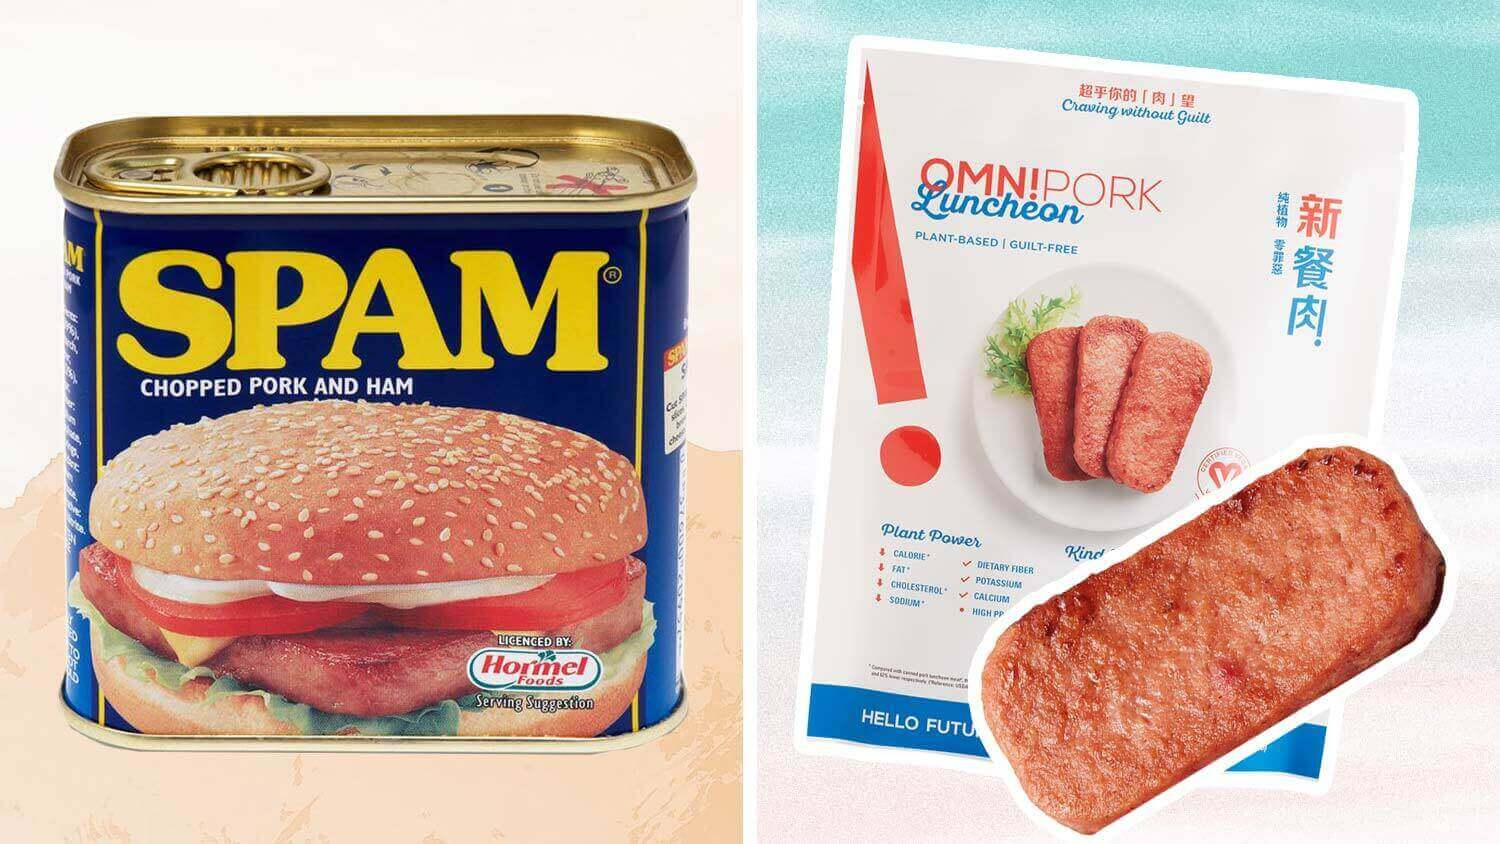 Omnipork (Finally?) Launches Vegan SPAM